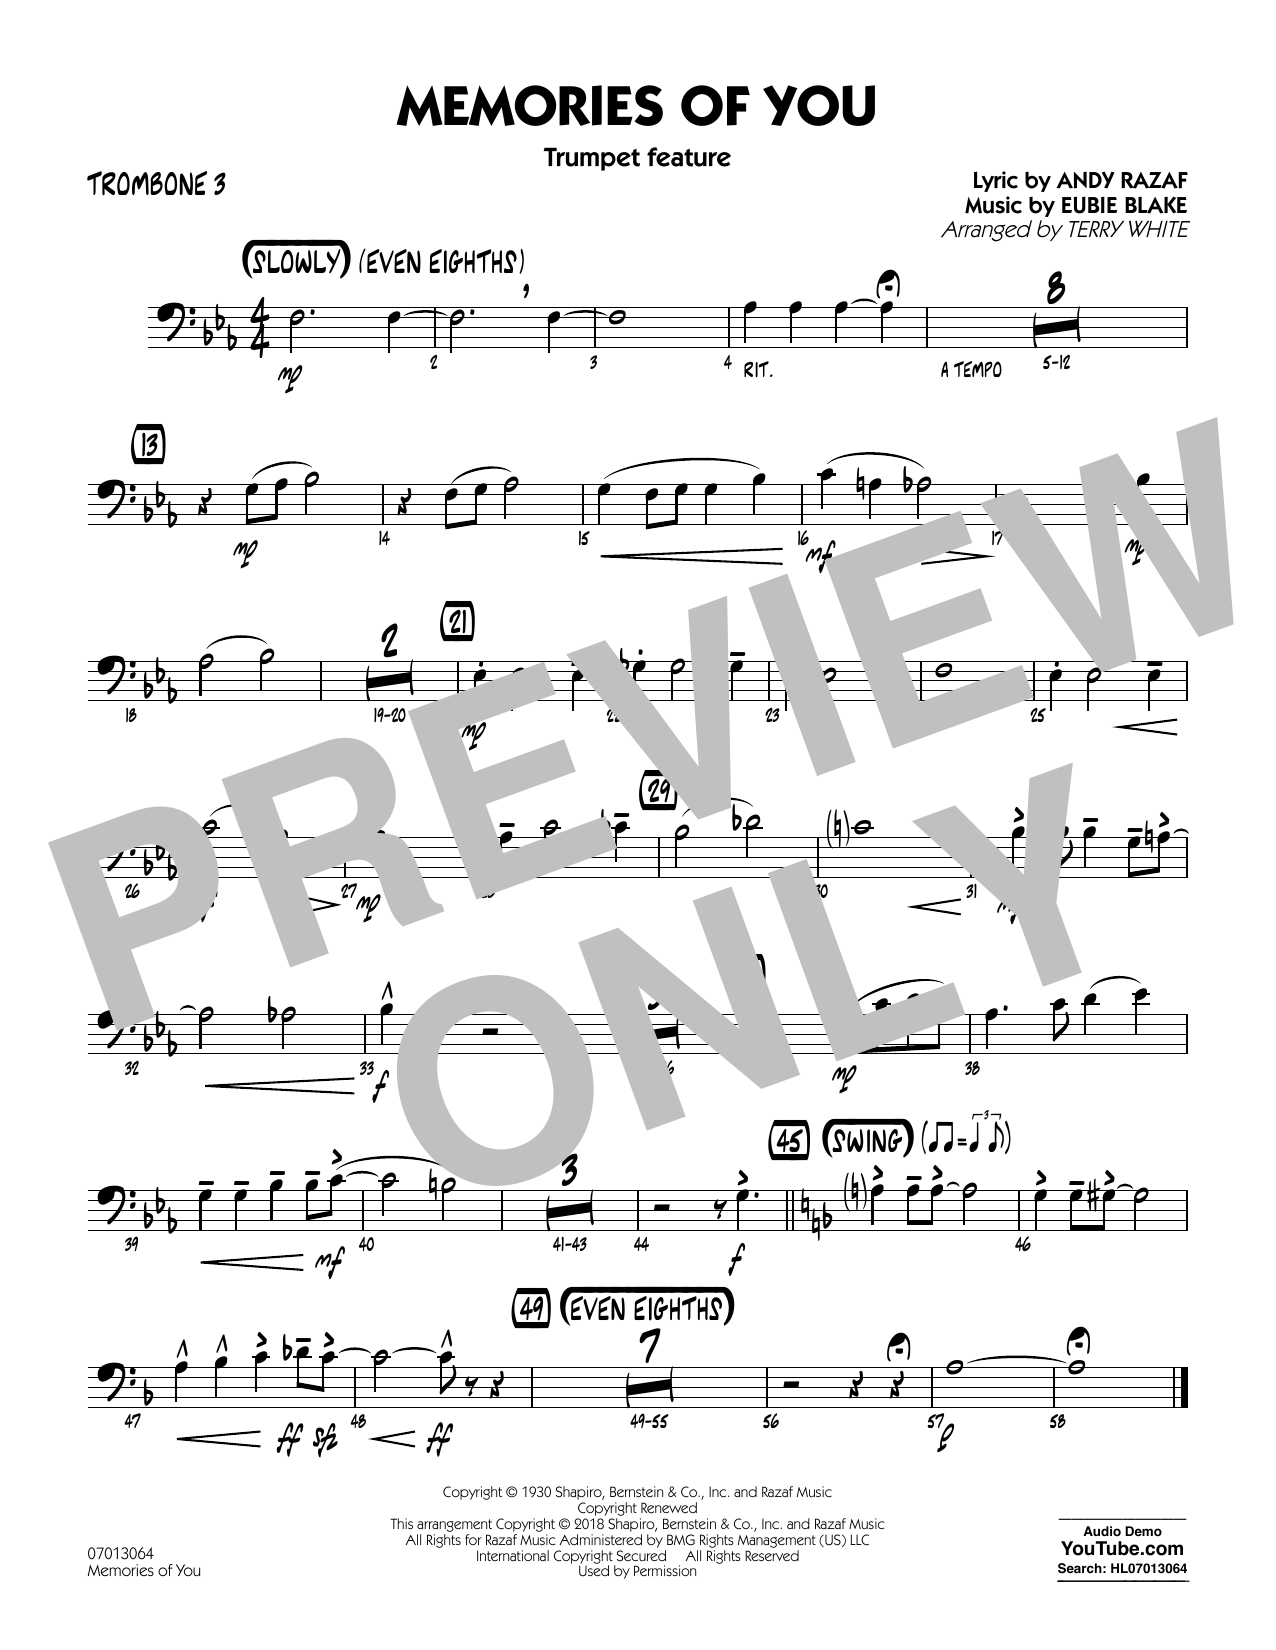 Terry White Memories of You (Trumpet Feature) - Trombone 3 sheet music notes printable PDF score